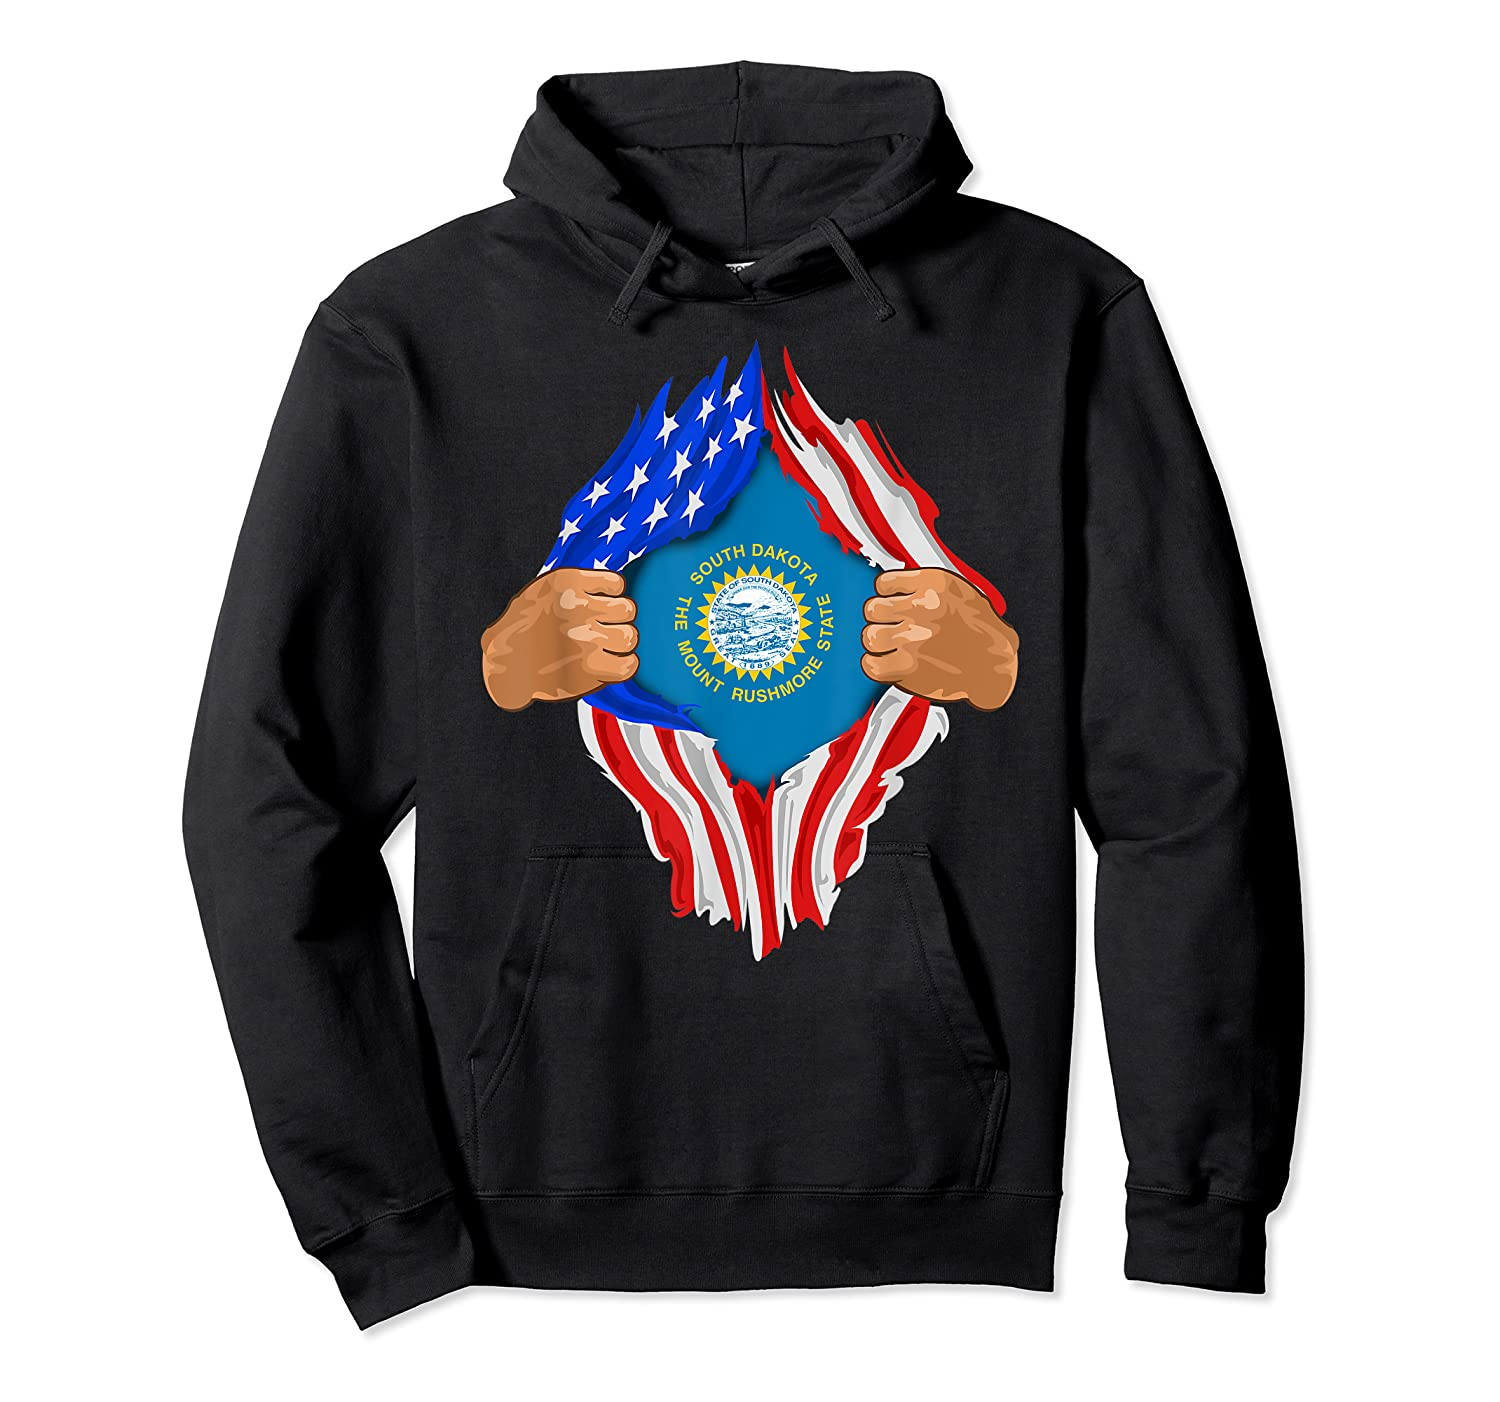 South Dakota Roots Inside State Flag American Proud Shirts Unisex Pullover Hoodie